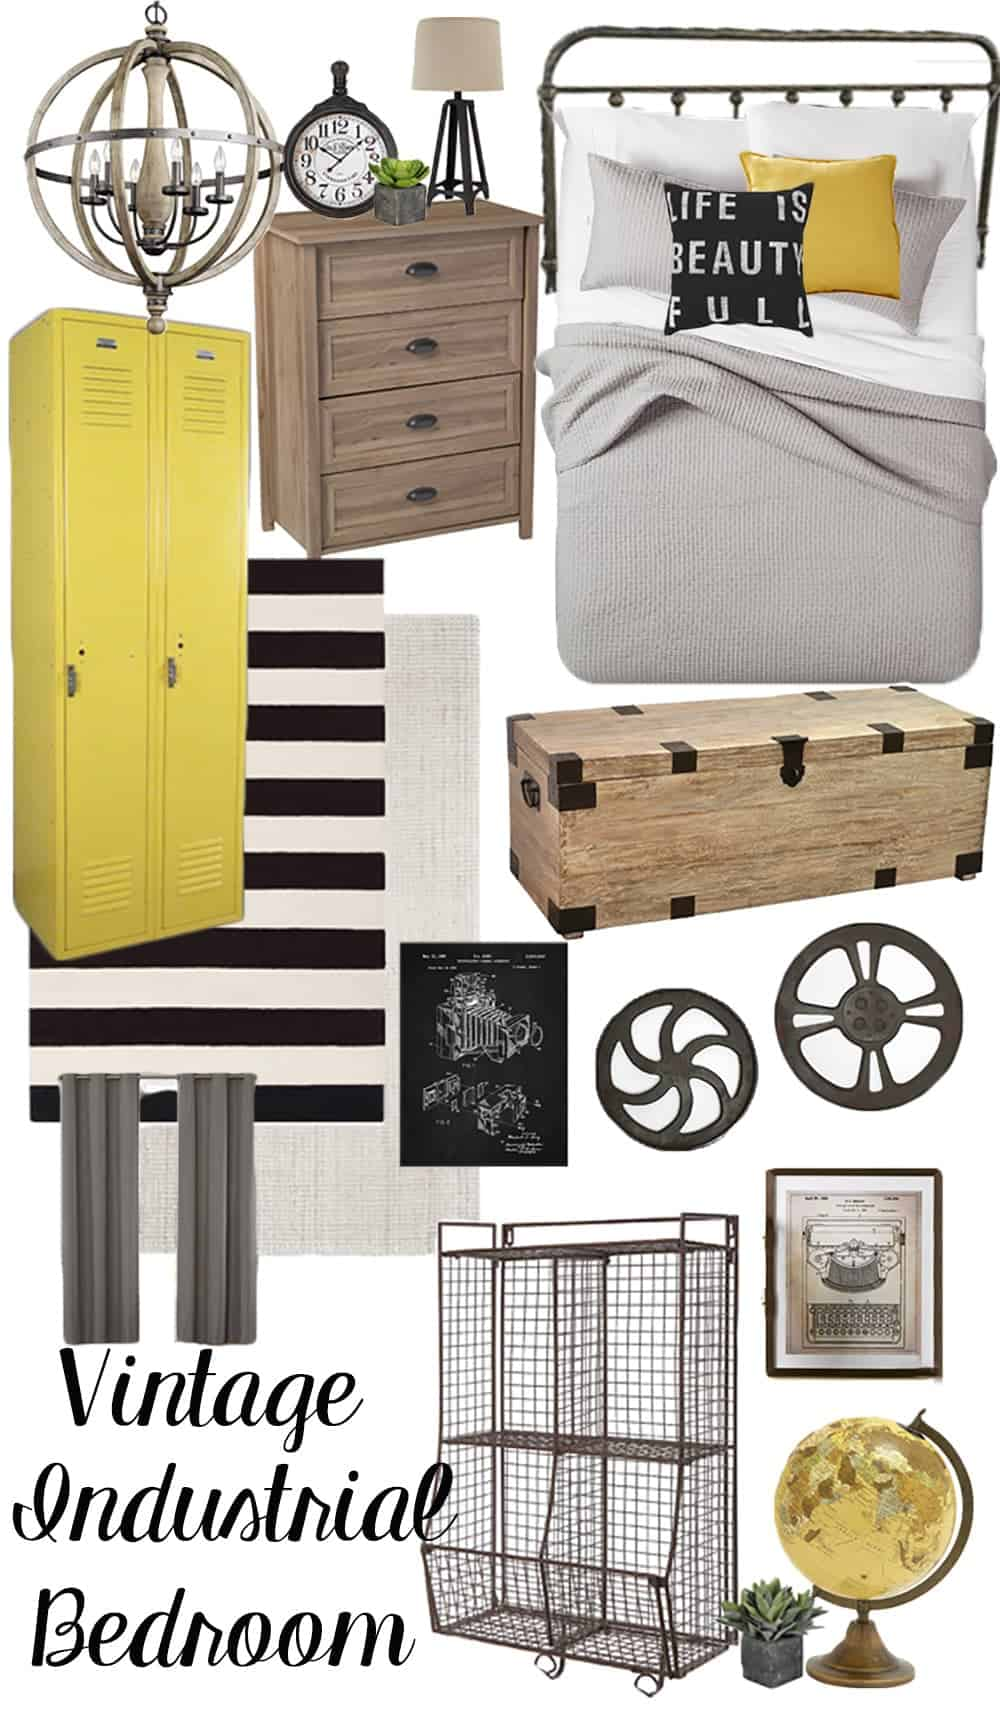 Collage of vintage industrial bedroom decor ideas.